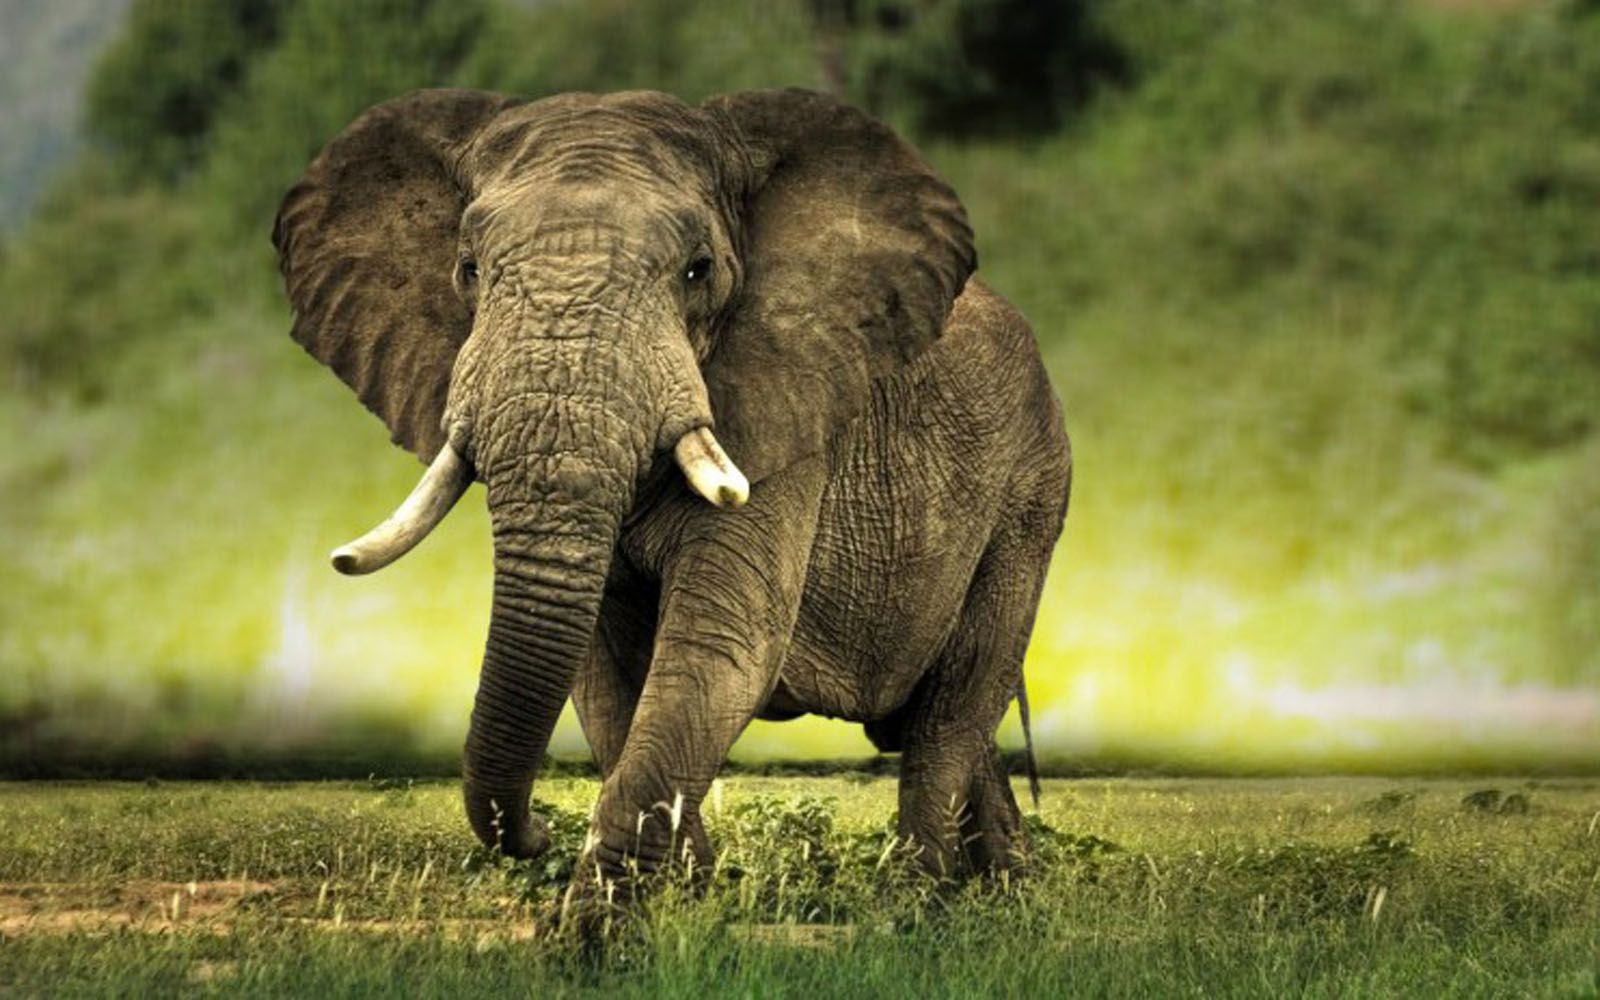 elephants pictures free download